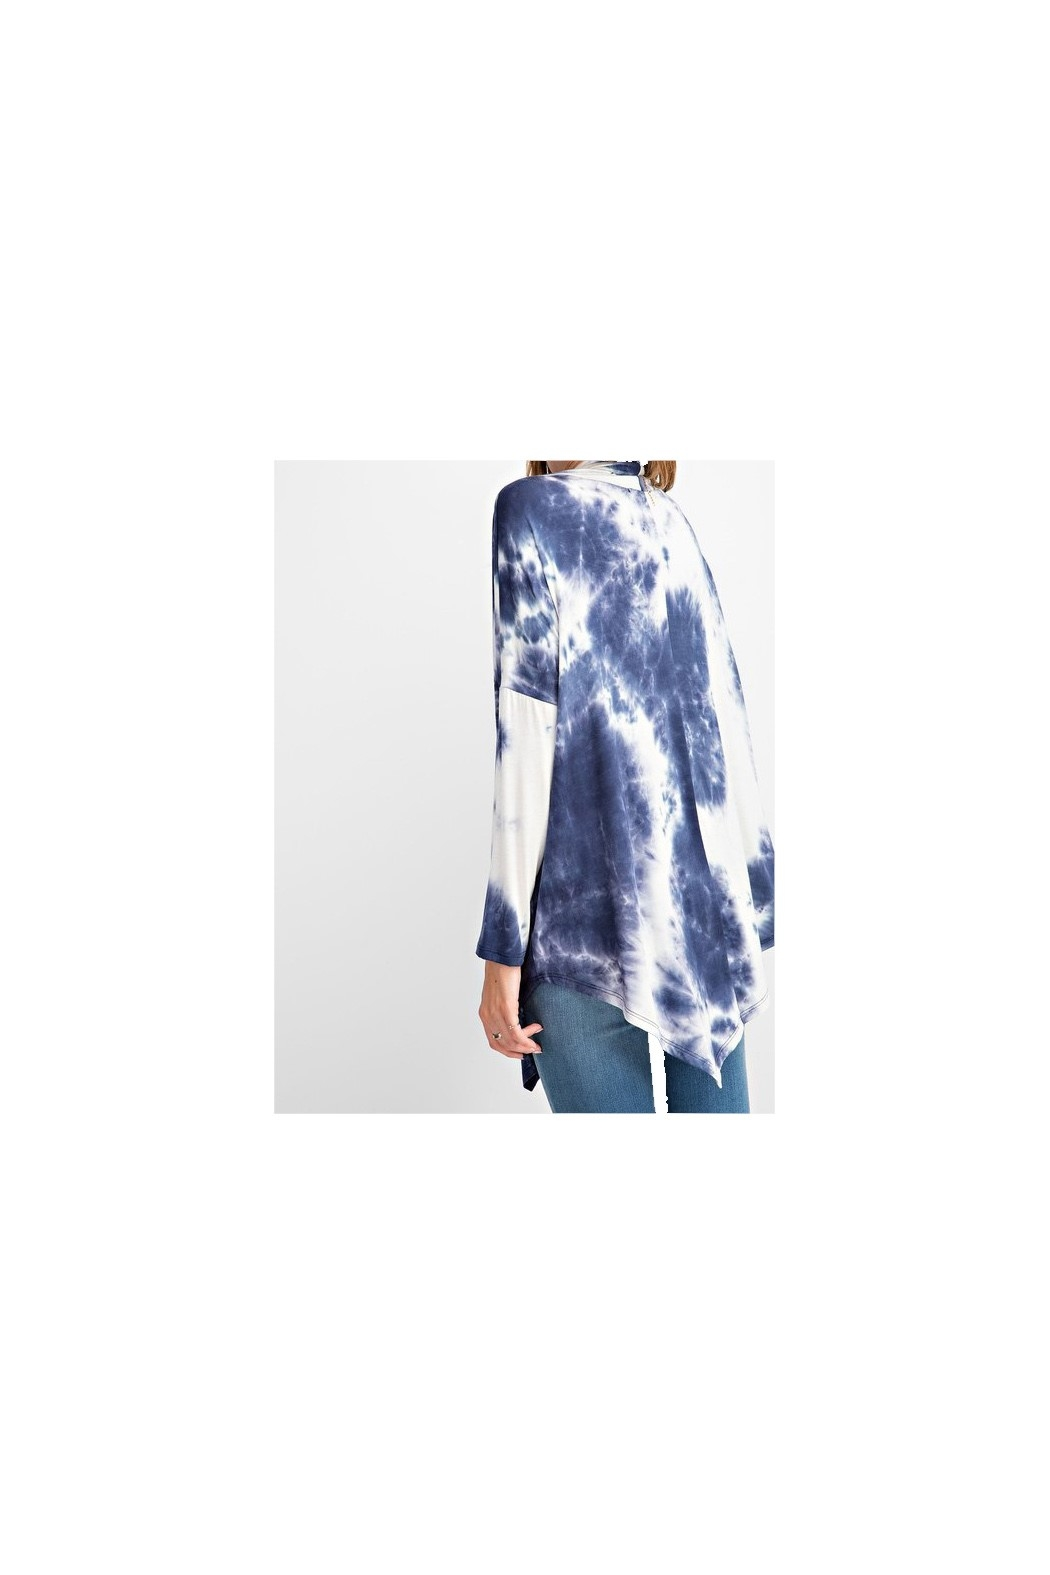 RAE MODE Blue and white asymmetrical tie dye long sleeve knit - Front Full Image